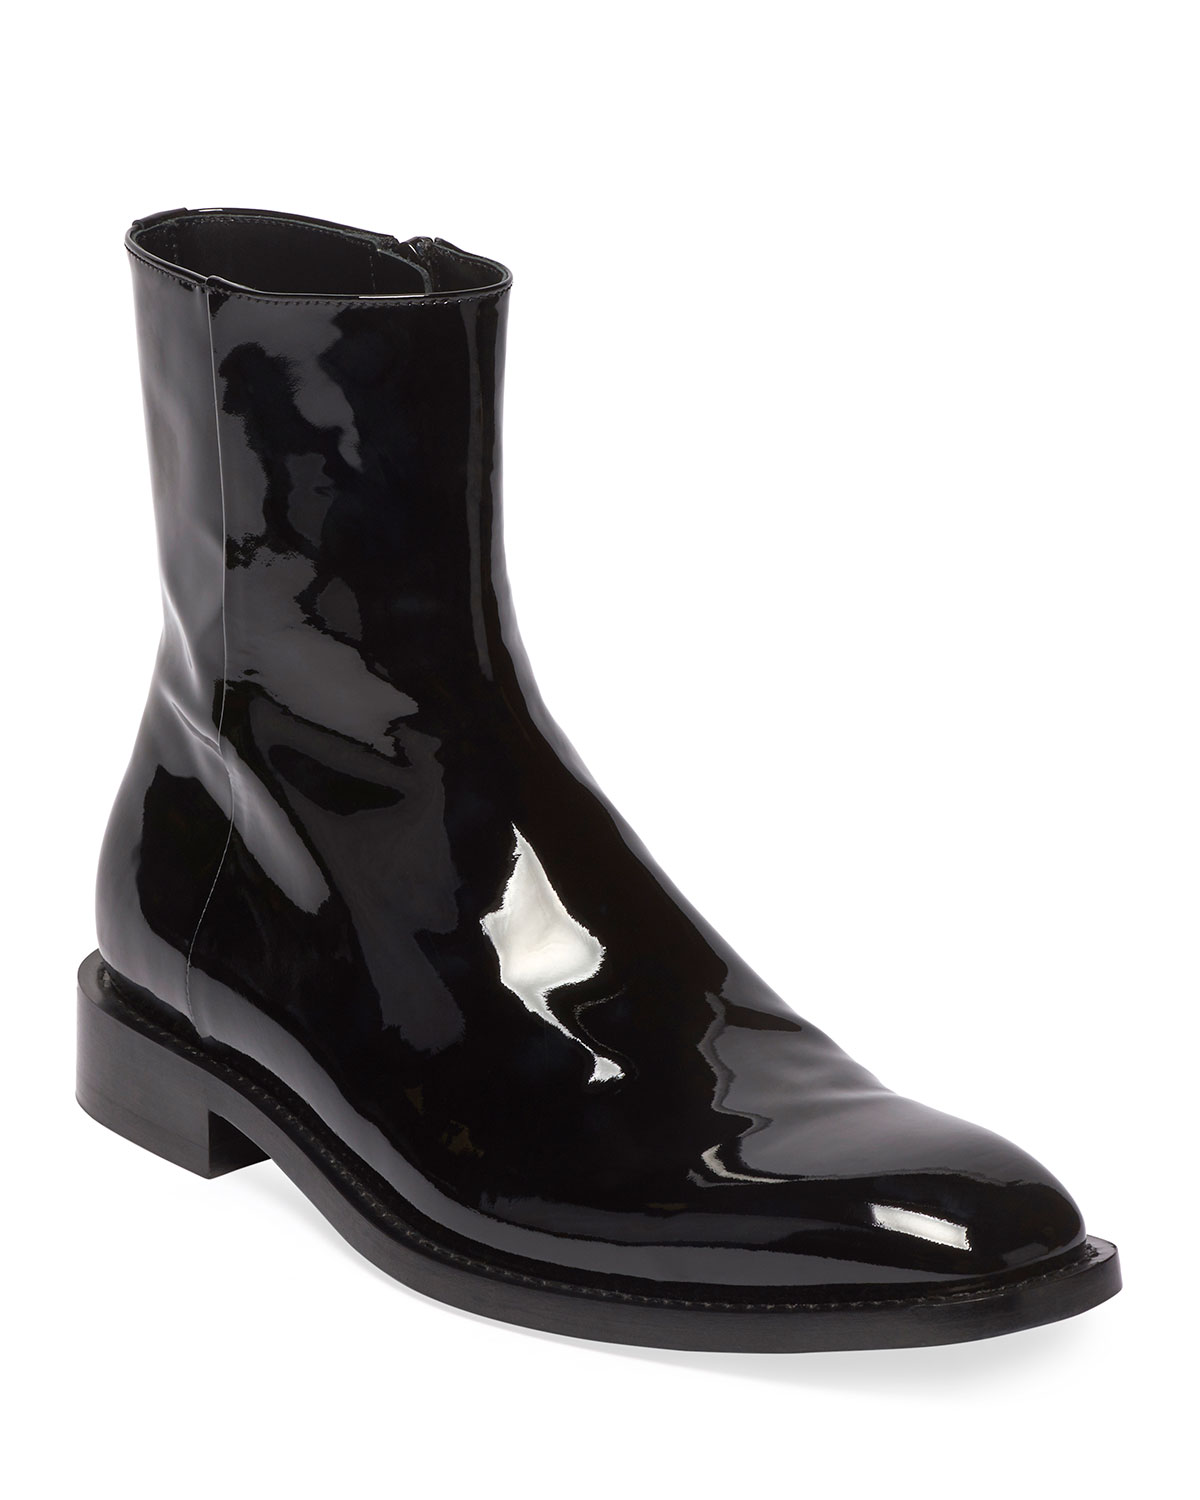 Rim Patent Leather Chelsea Boots